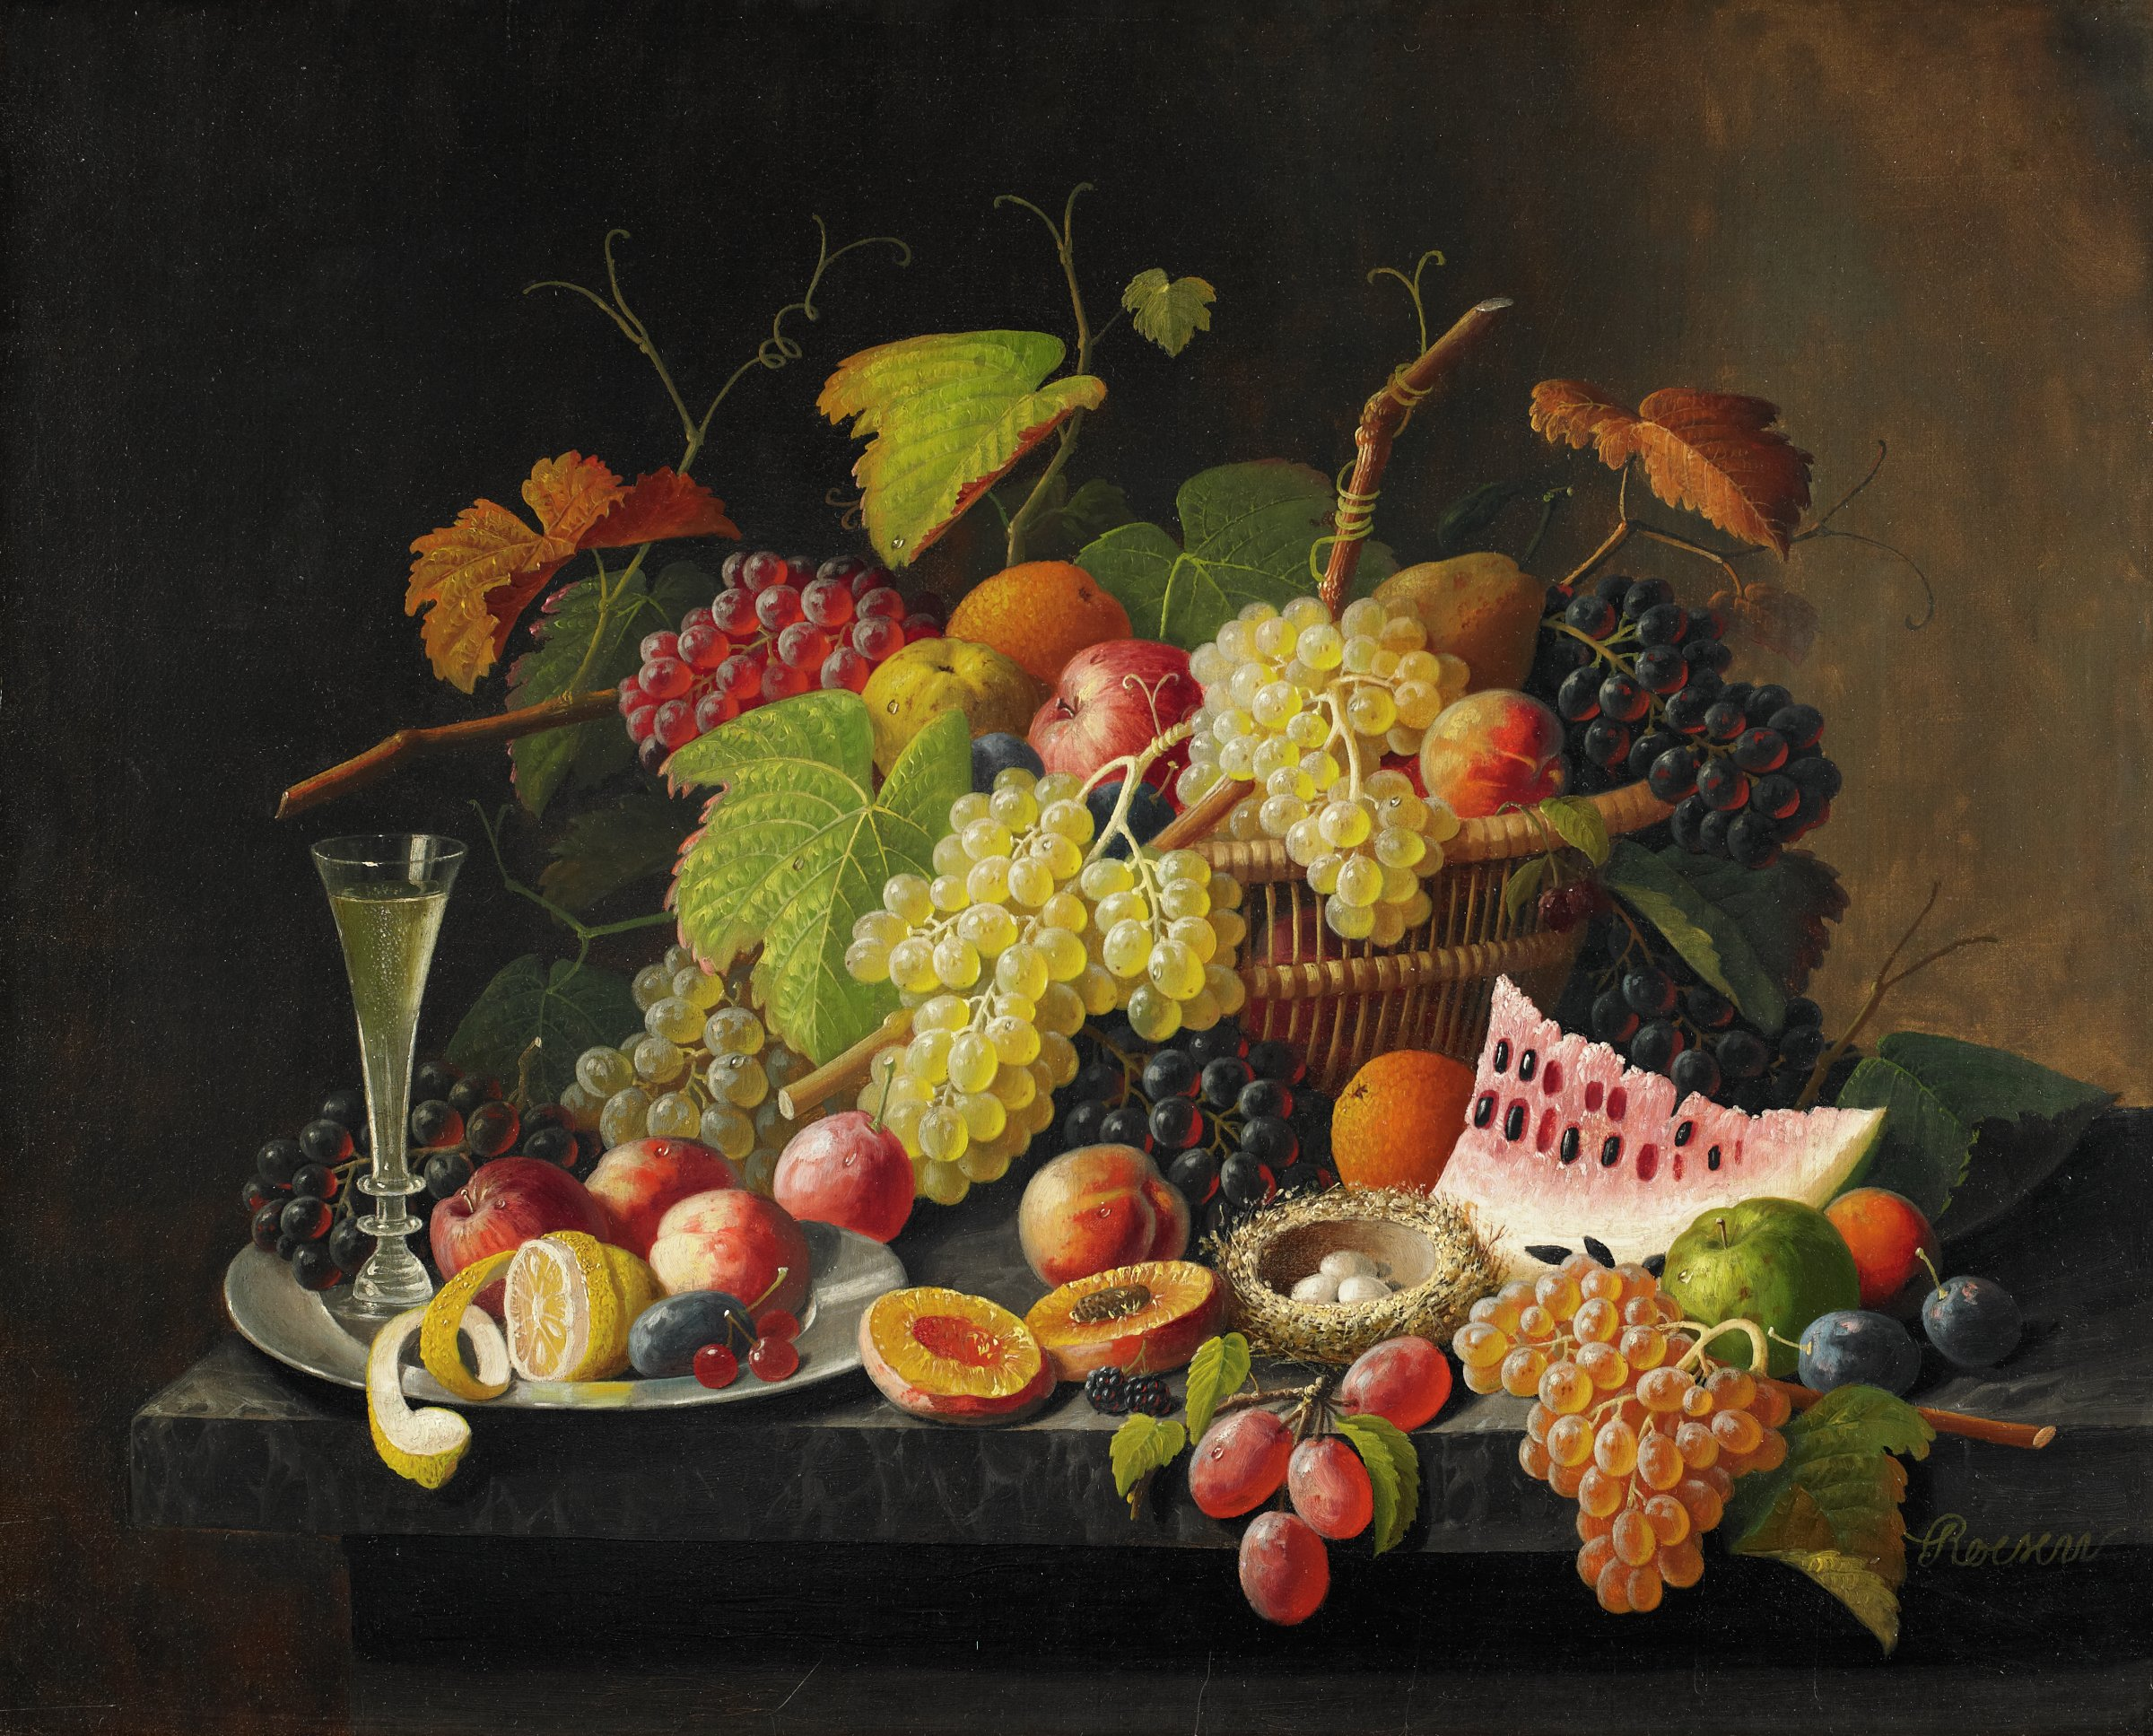 "This painting represents a basket of fruit sitting on a marble tabletop. Within the basket are grapes with grape leaves and vines, apples, peaches, an orange, and a pear. Spilling from the basket onto the tabletop are grapes, peaches, plums, apples, oranges, and a piece of cut watermelon. Amid the tabletop fruit is a bird's nest containing three eggs. There is also a silver plate on the tabletop, and on the silver plate are a filled champagne flute and a peeled lemon, as well as grapes, apples, peaches, a plum, and two currants. The artist has signed the painting ""Roesen"" in the lower right corner by extending a grape vine."